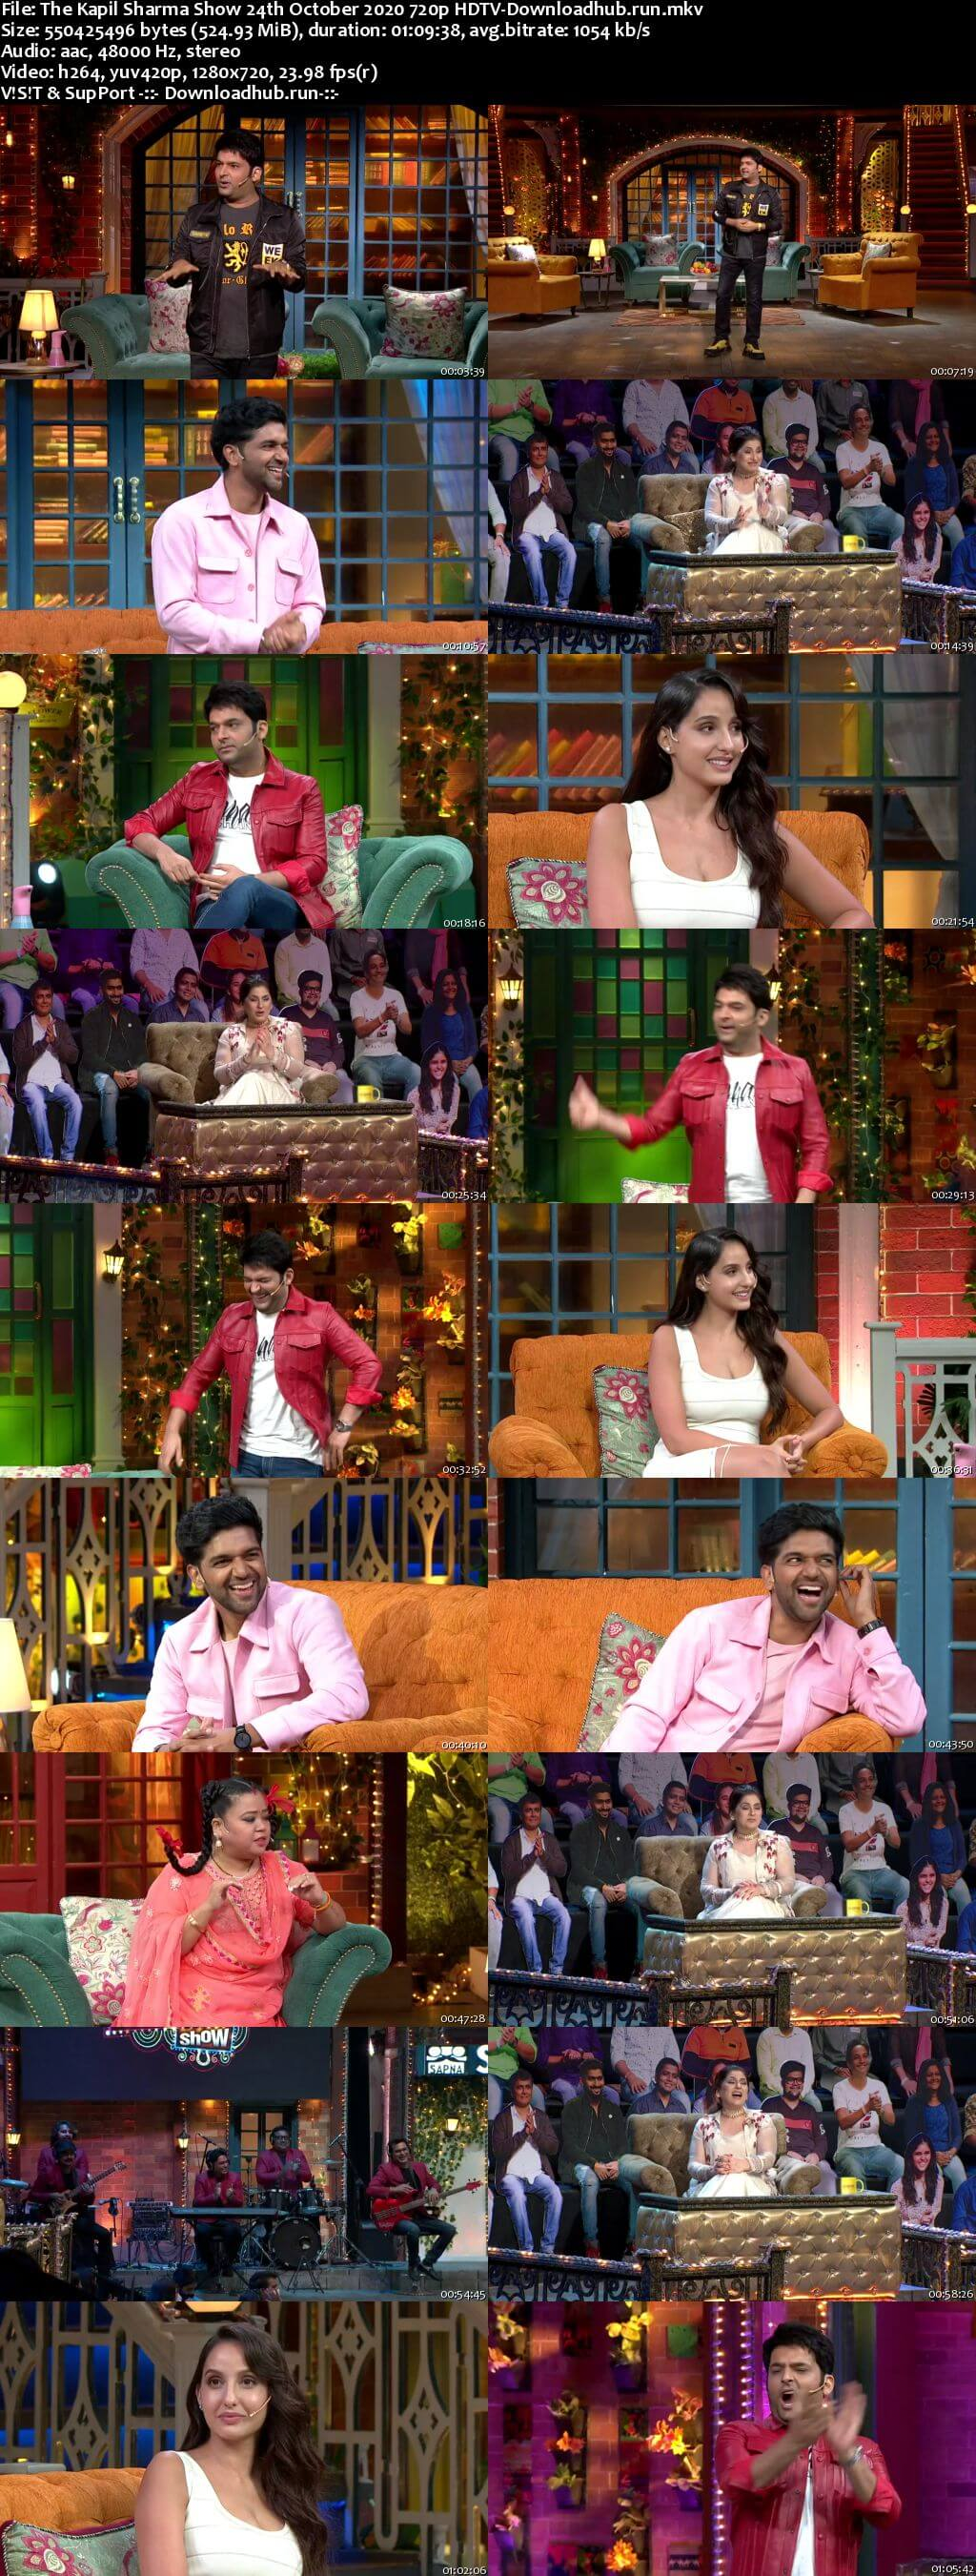 The Kapil Sharma Show 24 October 2020 Episode 152 HDTV 720p 480p